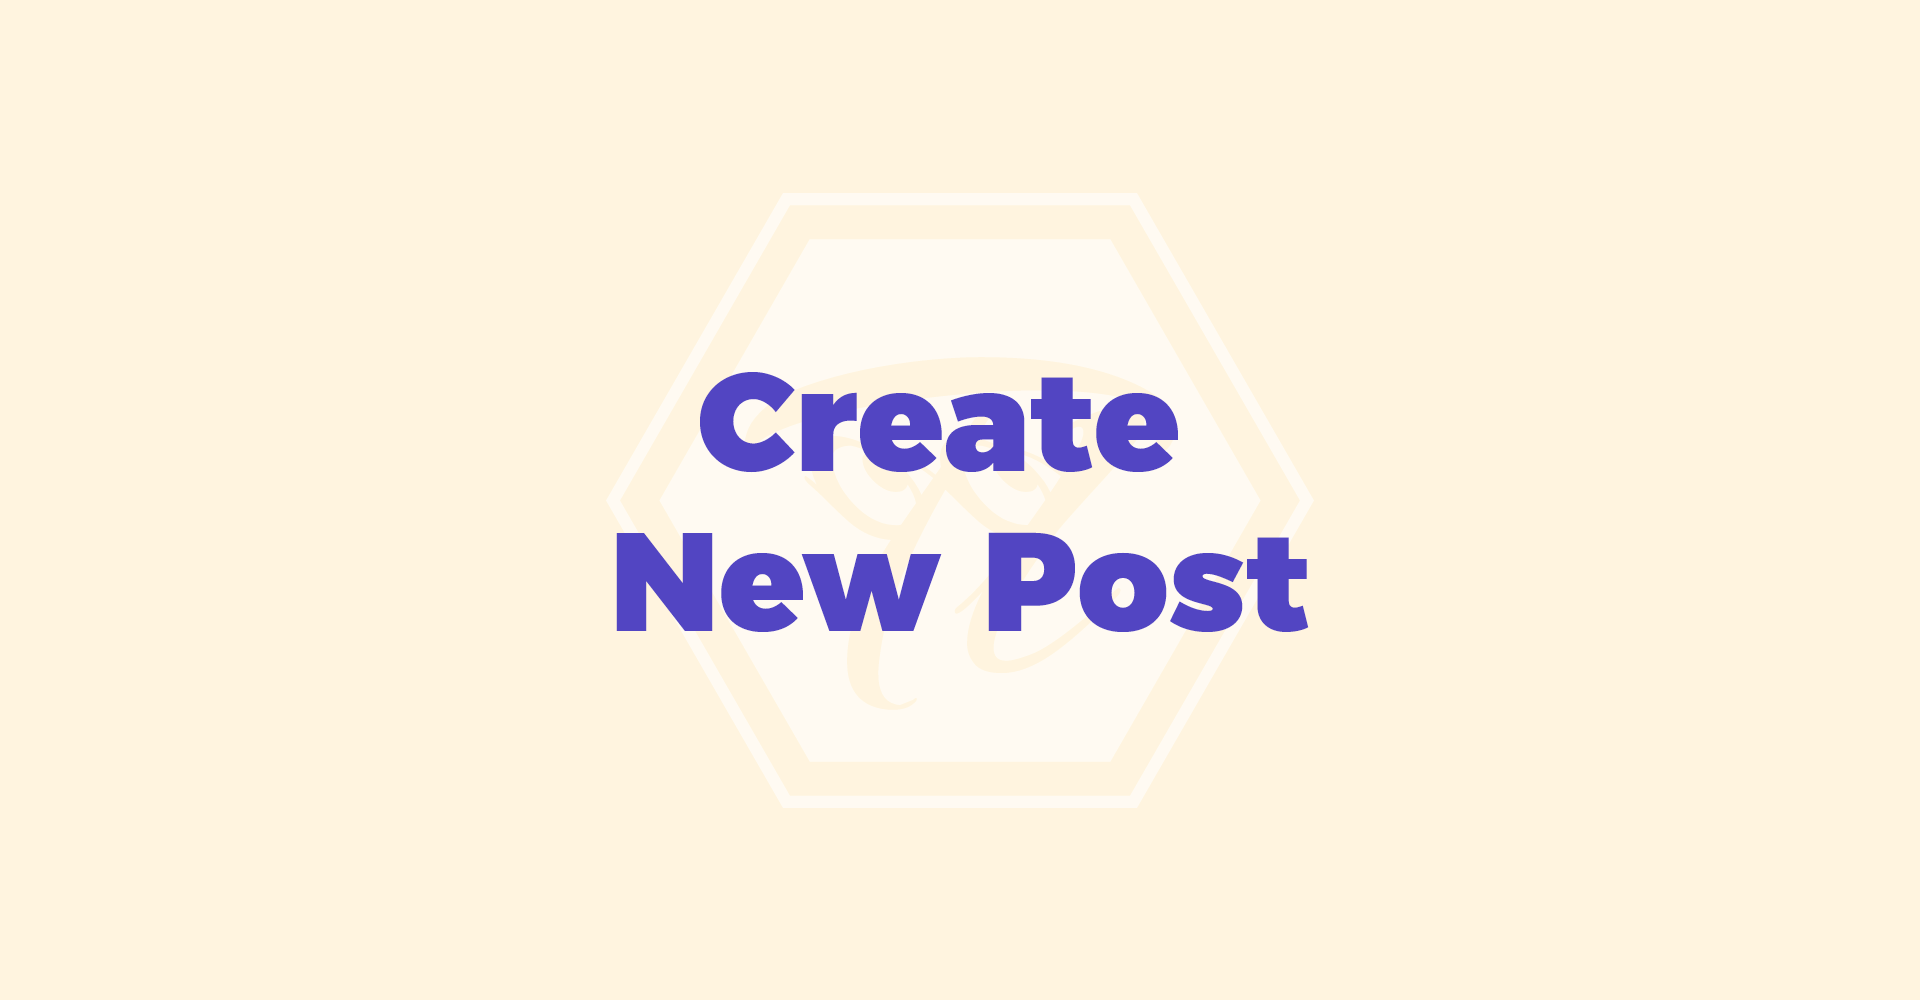 create__new_post 1 1